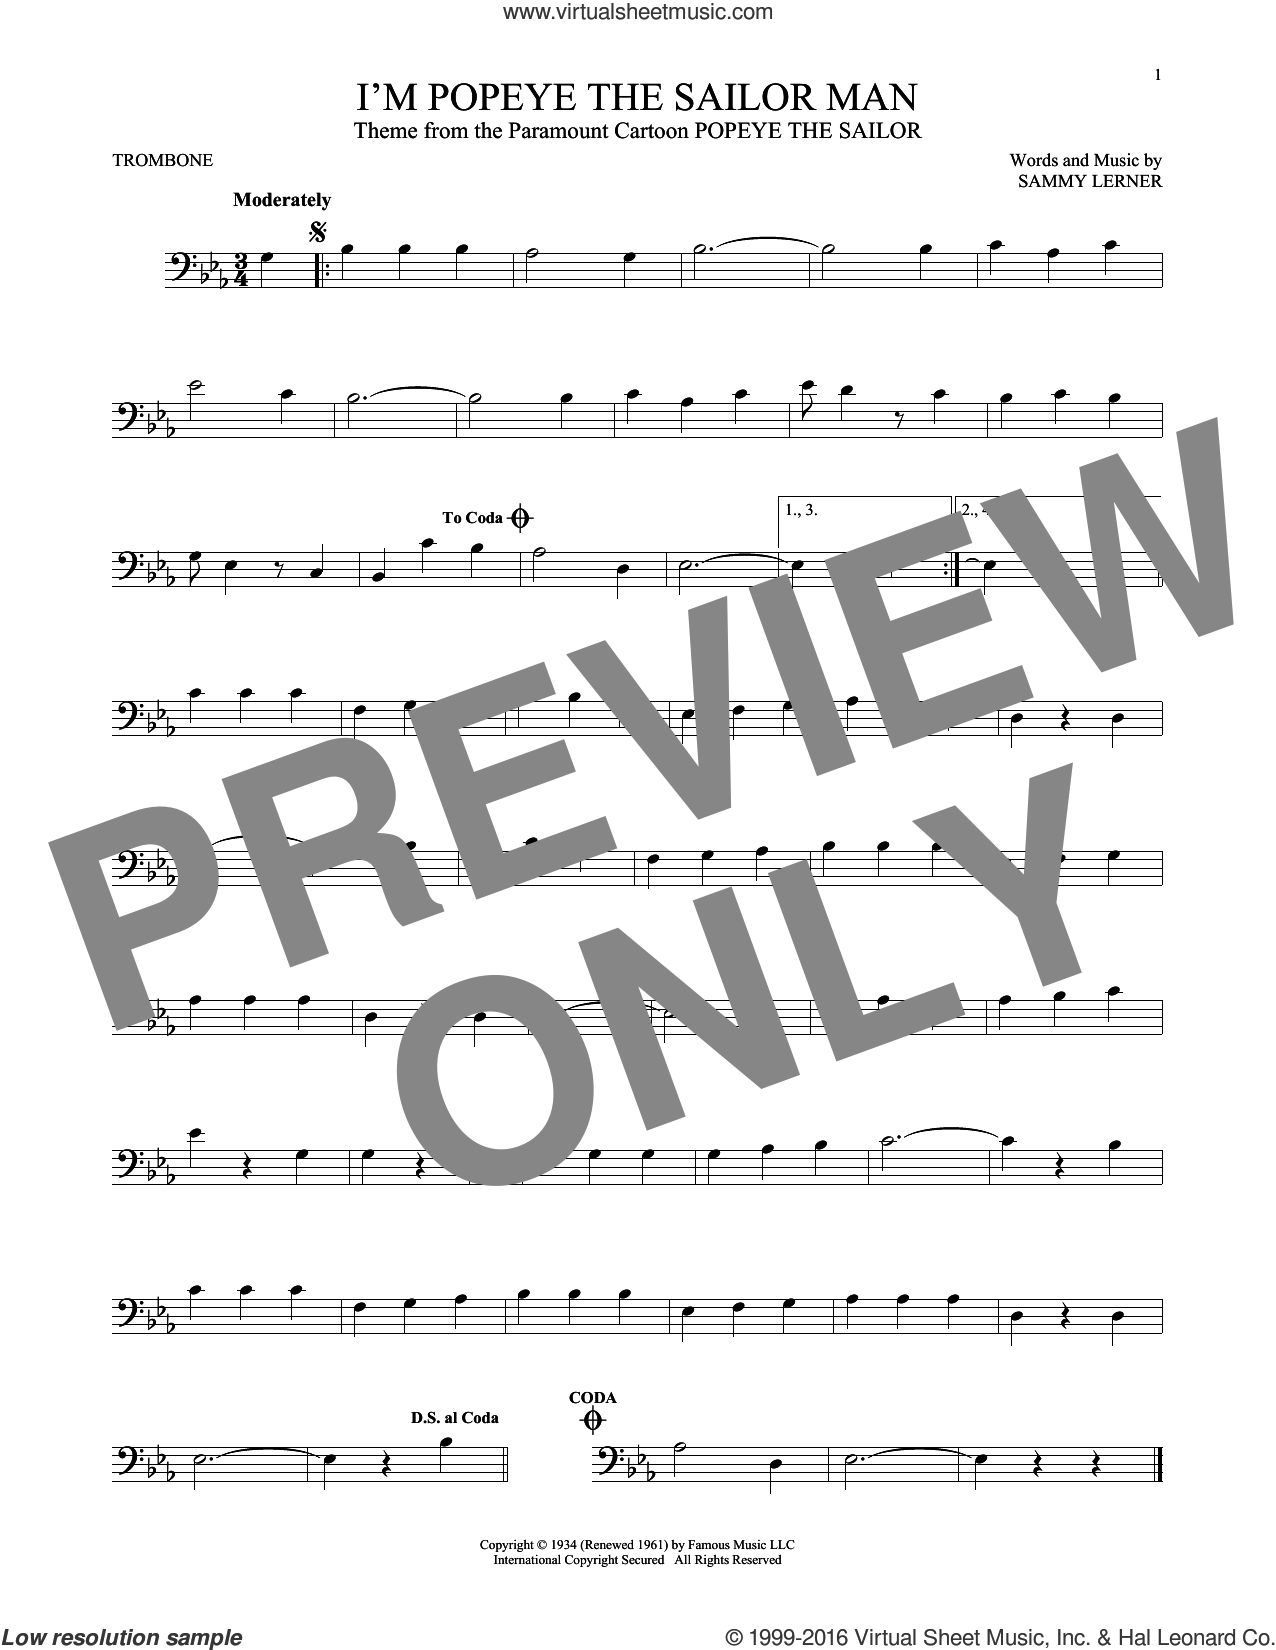 I'm Popeye The Sailor Man sheet music for trombone solo by Sammy Lerner